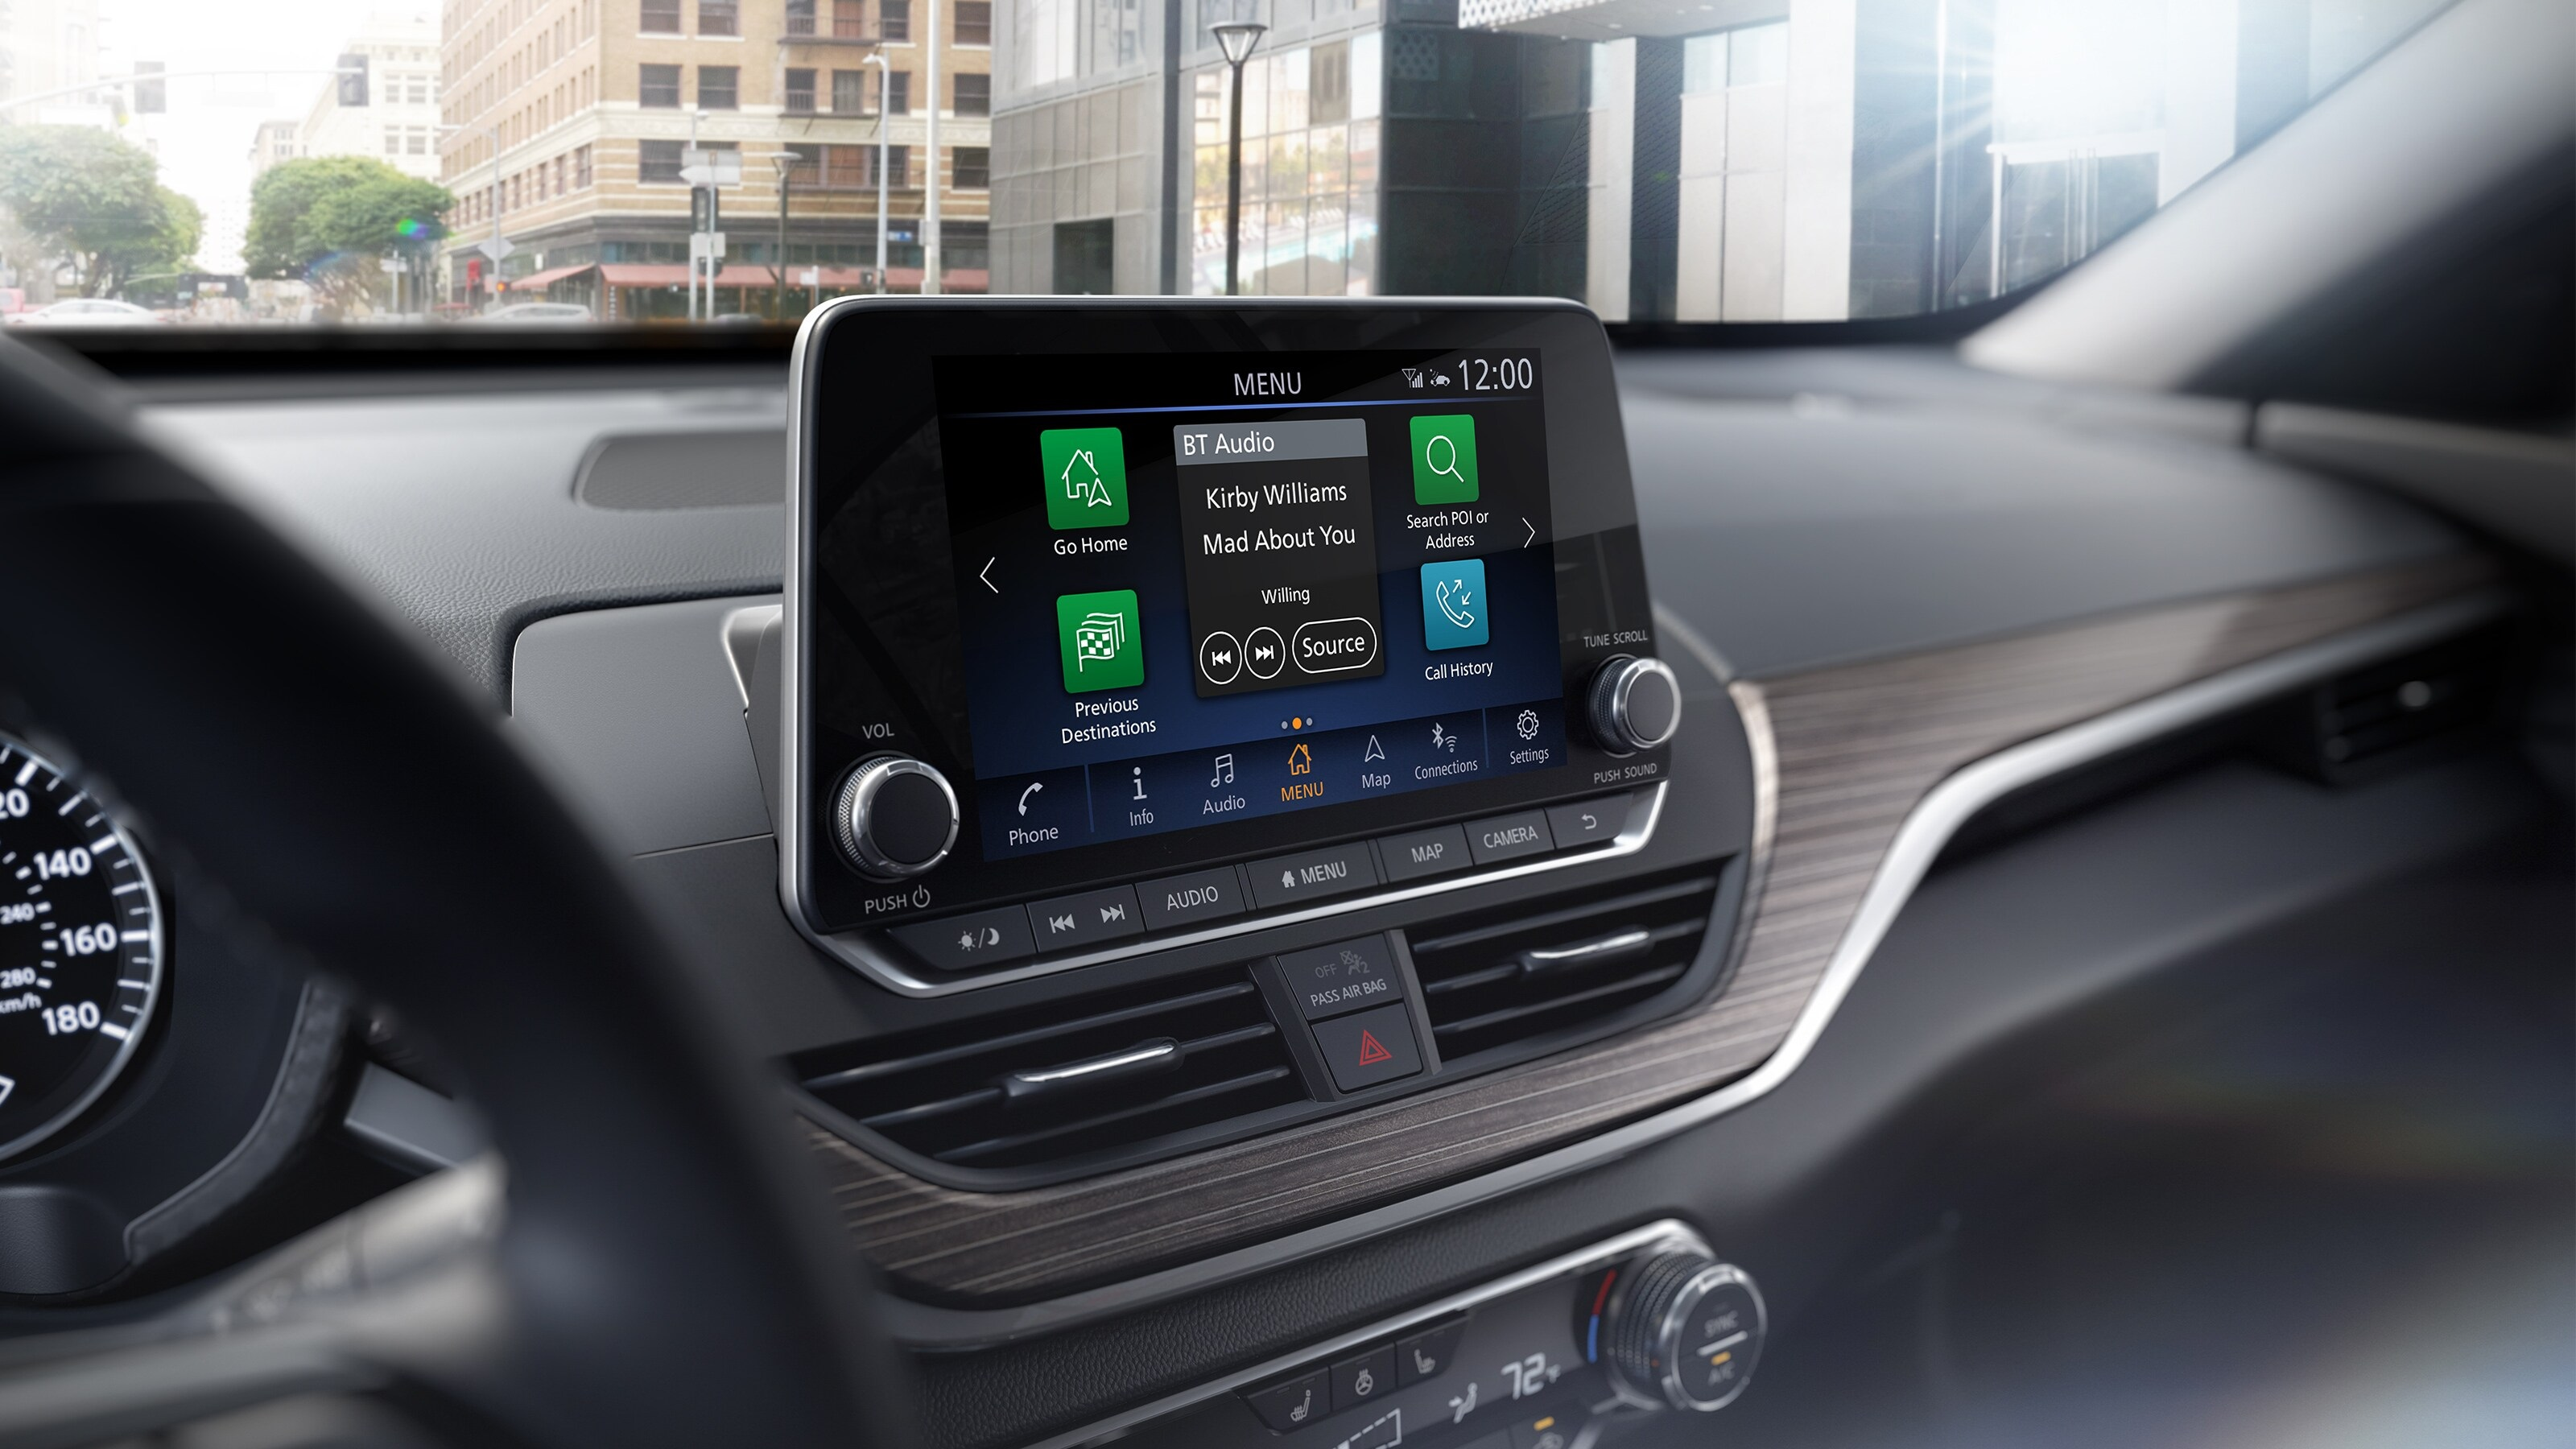 2020 Nissan Altima Touchscreen Display